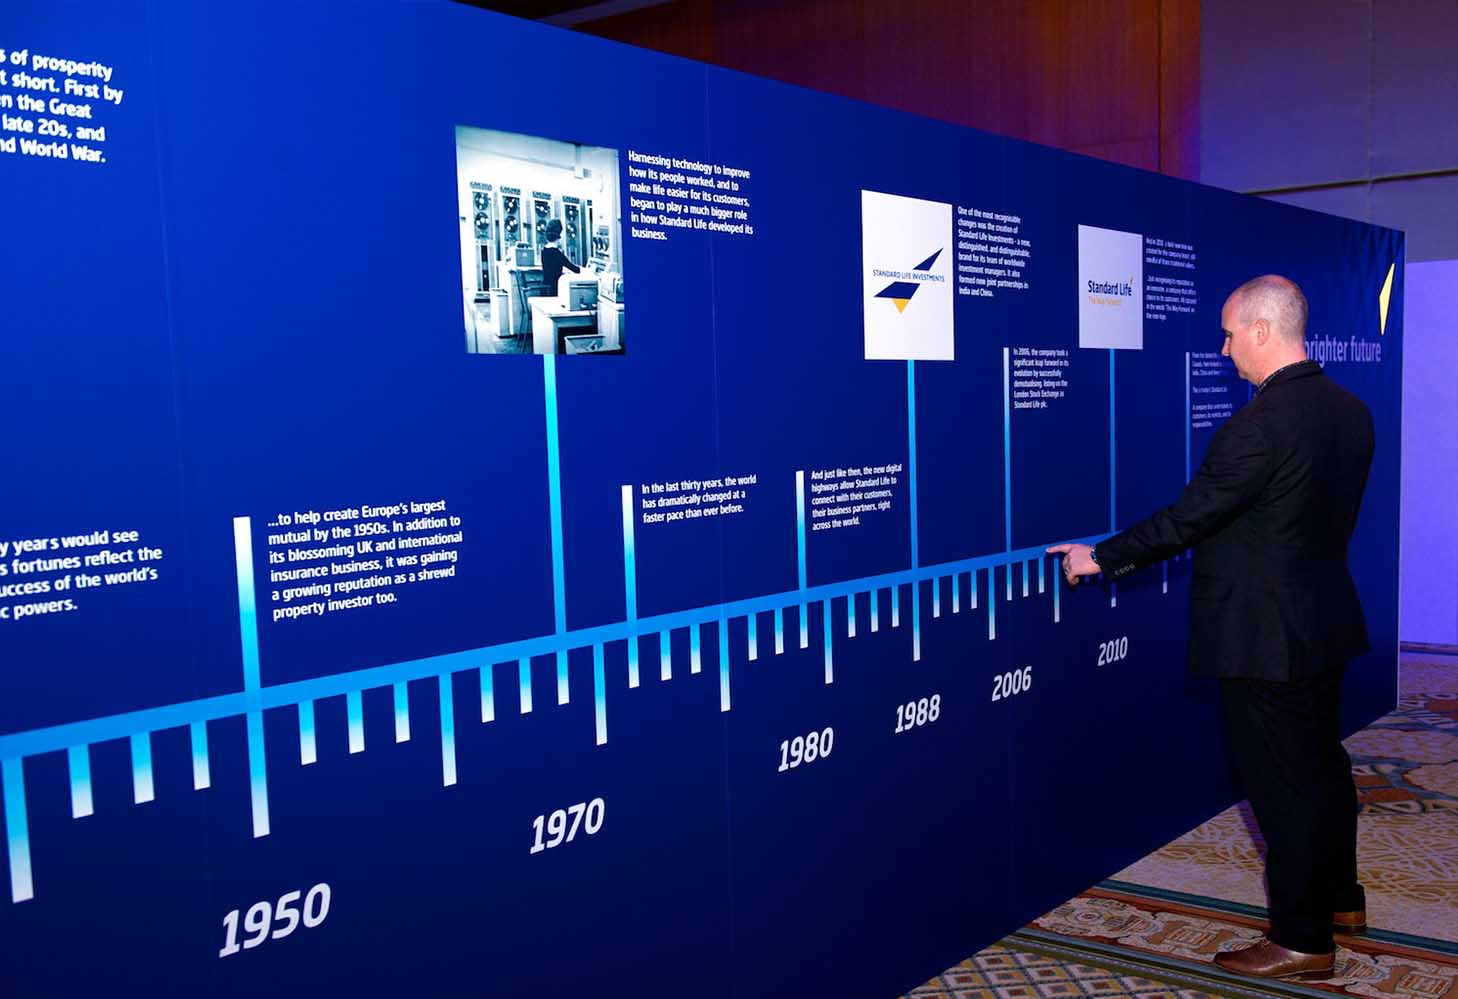 Launch-Event-Timeline-Wall Standard Life